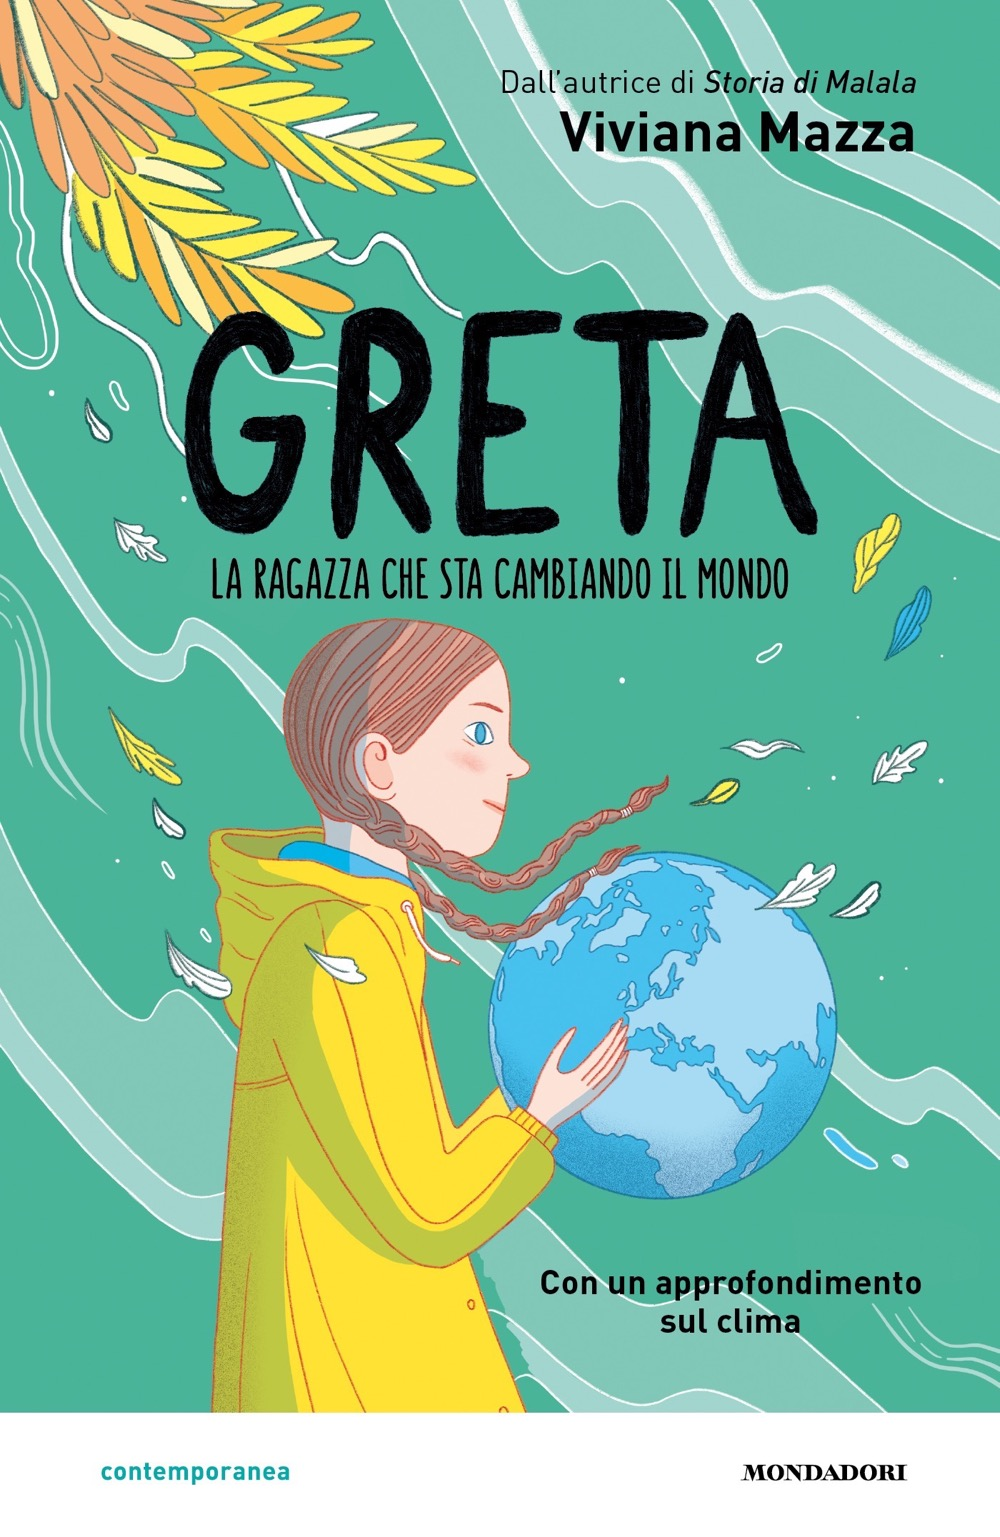 Greta. La ragazza che sta cambiando il mondo (GRETA. THE GIRLS WHO 'S CHANGING THE WORLD)